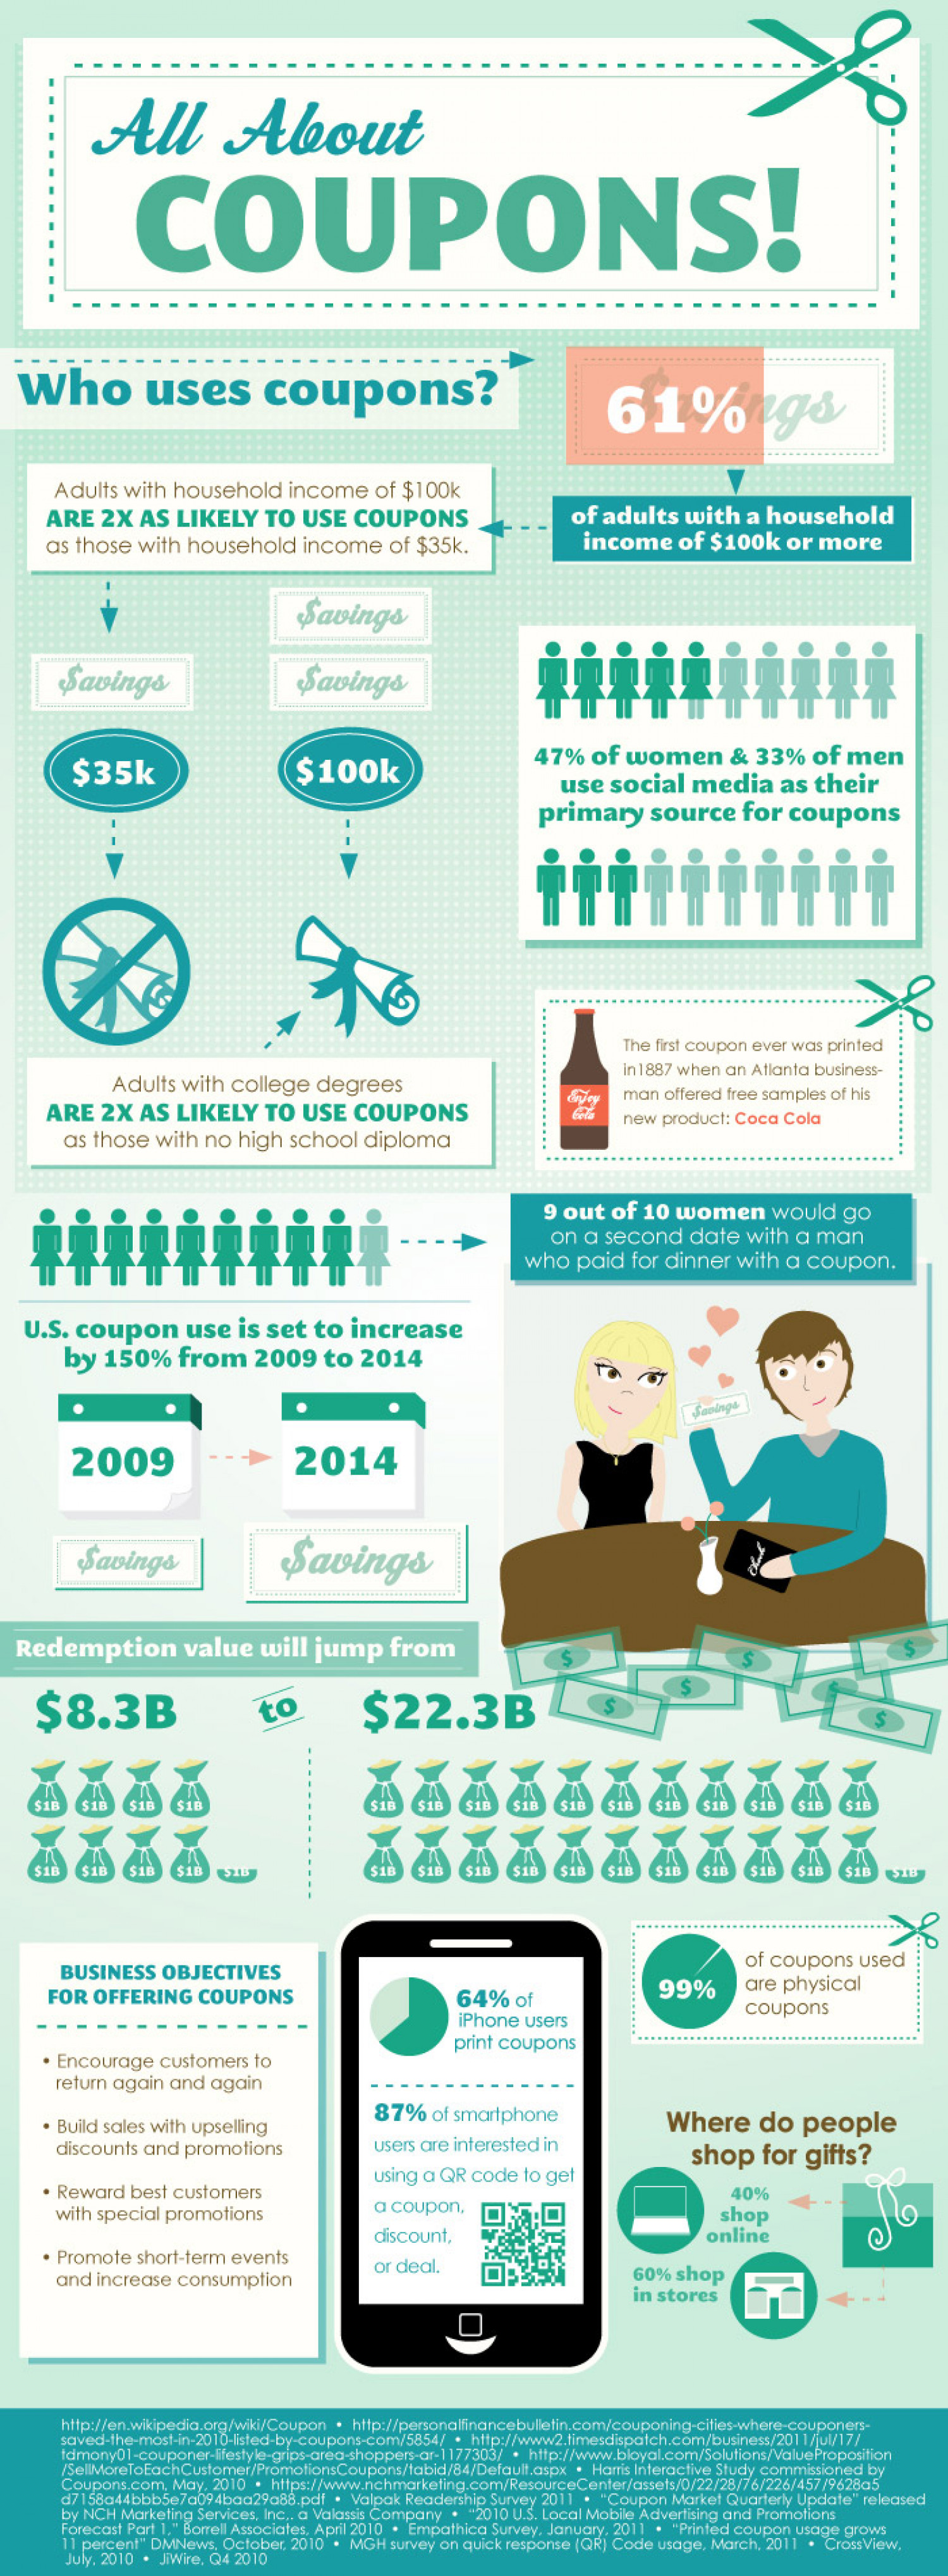 Everything About Coupons Infographic